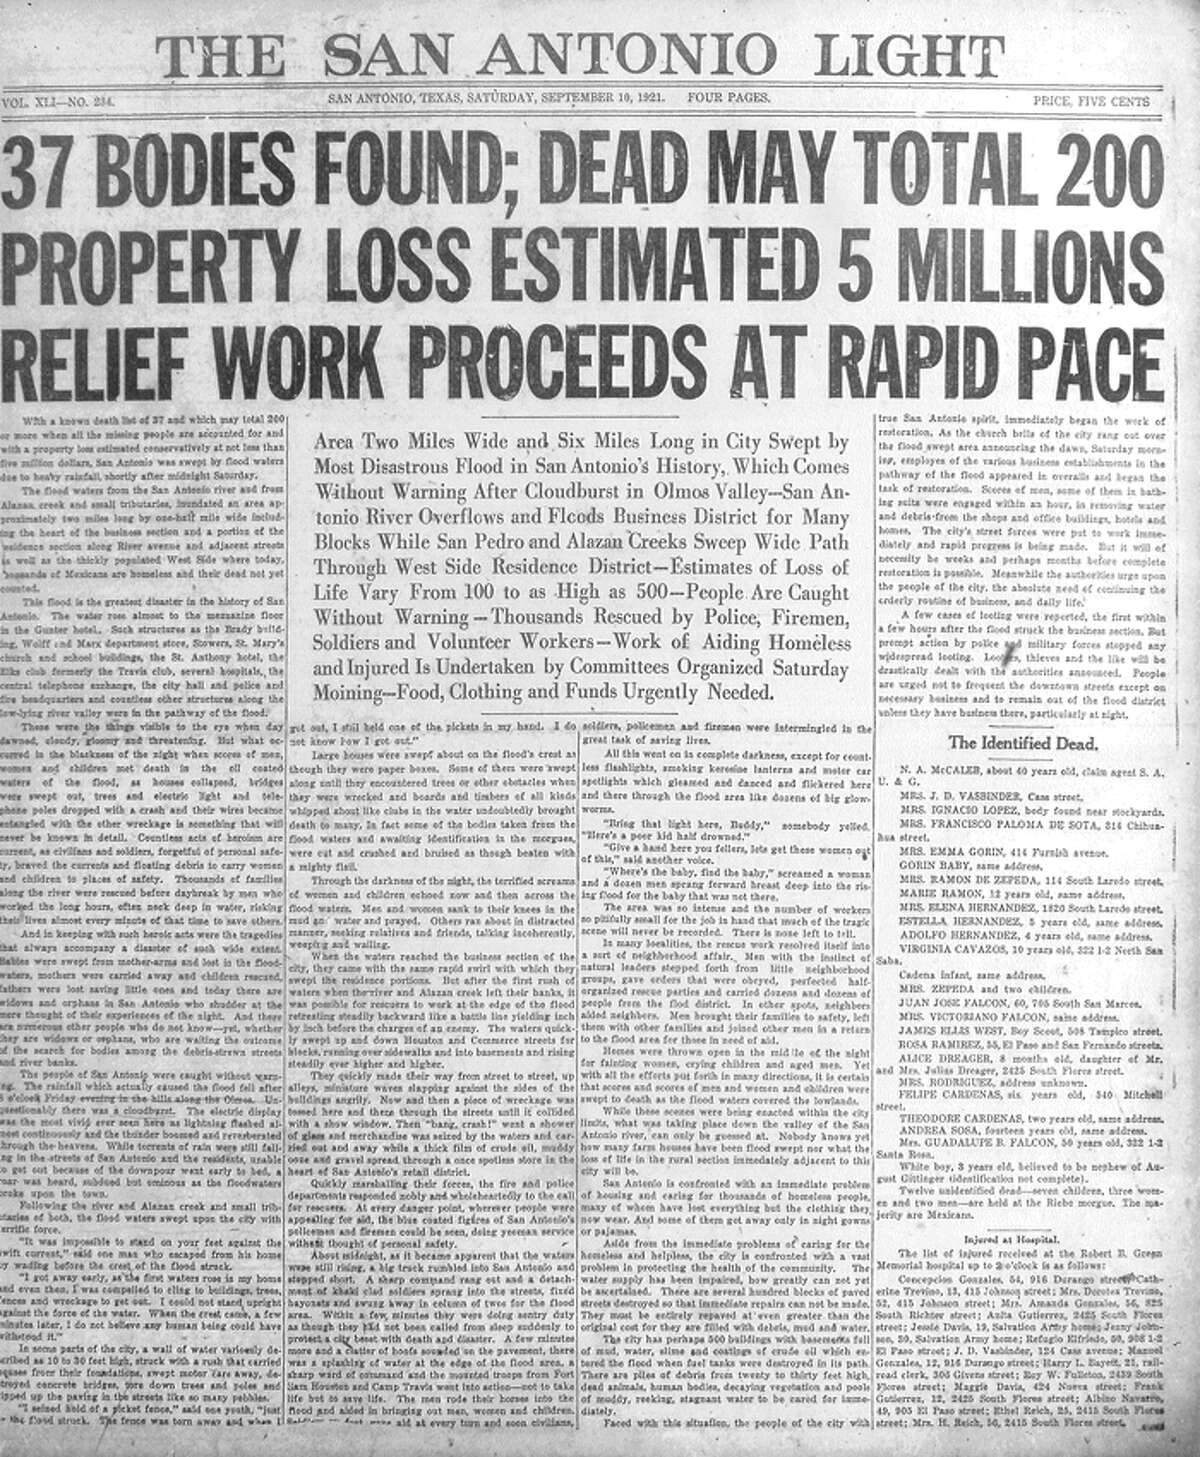 """Sept. 10, 1921: The San Antonio Light fills the entire front page with news of the most disastrous flood in the history of San Antonio. The Light reports the flood, """"which comes without warning after cloudburst in Olmos Valley ... floods business district for many blocks while San Pedro and Alazan creeks sweep wide path through West Side residence district ... thousands rescued by police, firemen, soldiers and volunteer workers."""""""